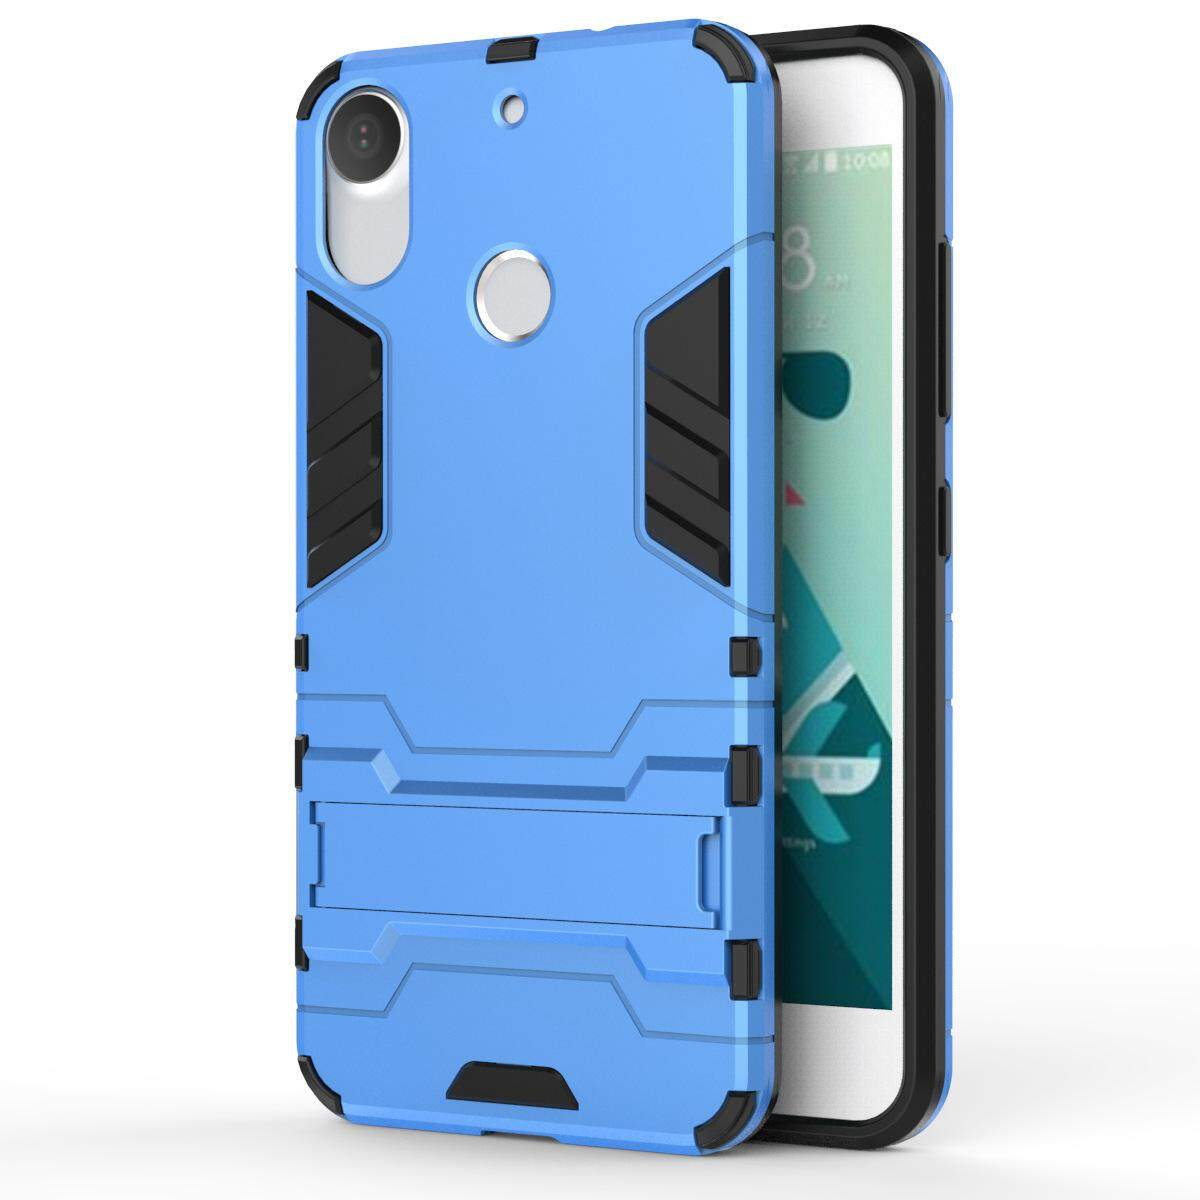 Hình ảnh for HTC Desire 10 Pro Case 2in1 PC+TPU Hybrid Slim Back Case Ultra Thin Armor Cover, with Kickstand Holder, Glossy, Minimalist, Casual